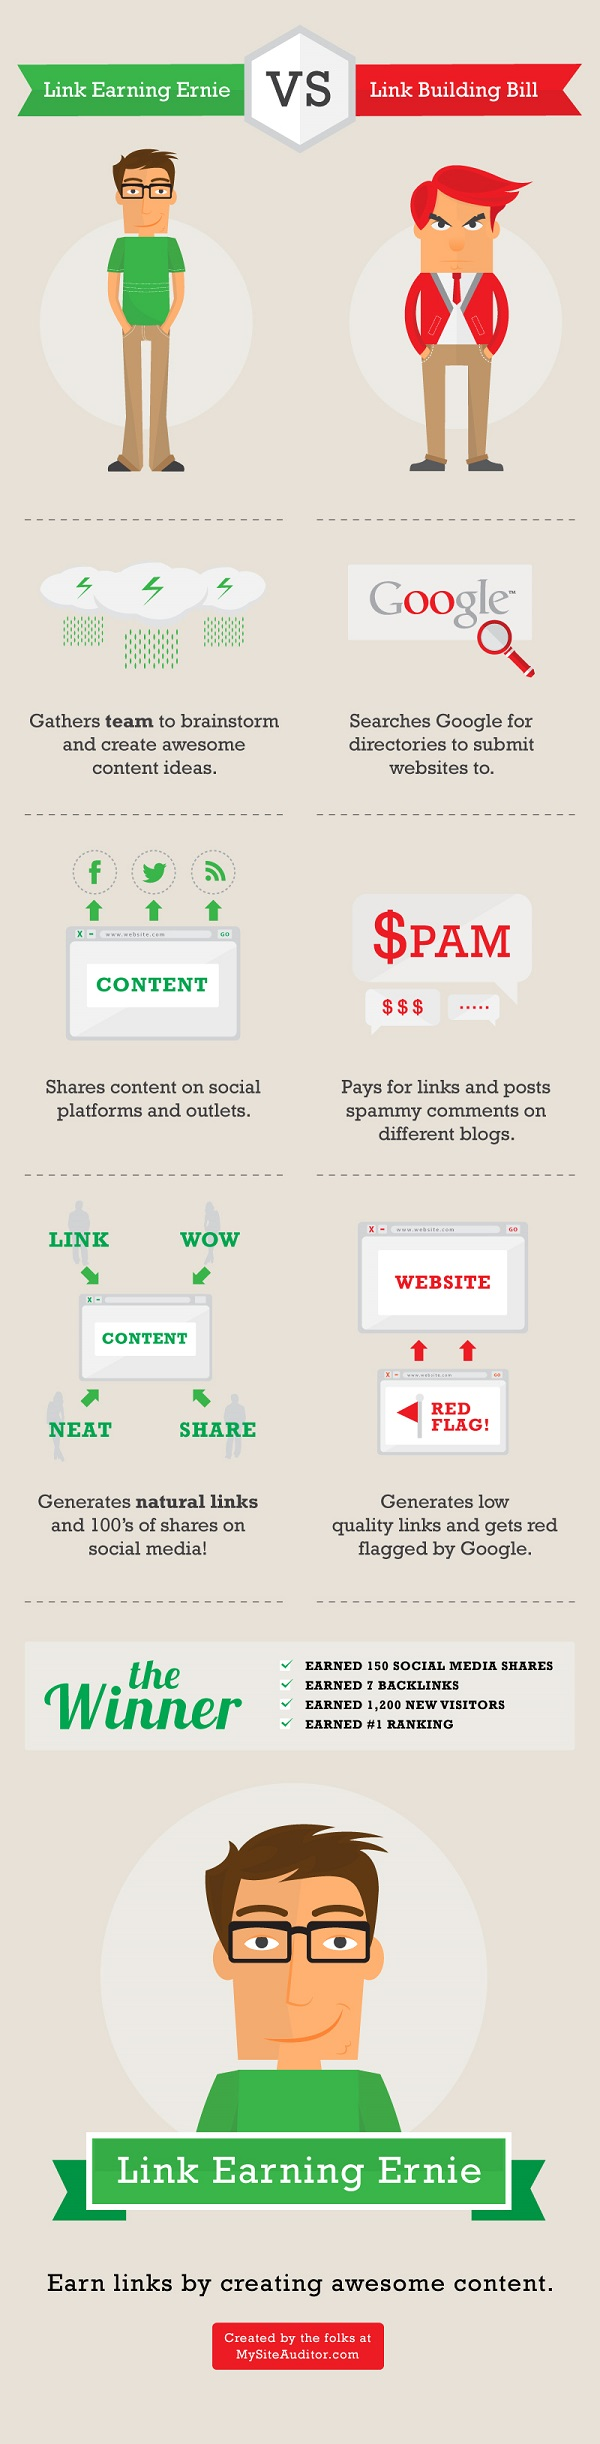 link-earning-link-building